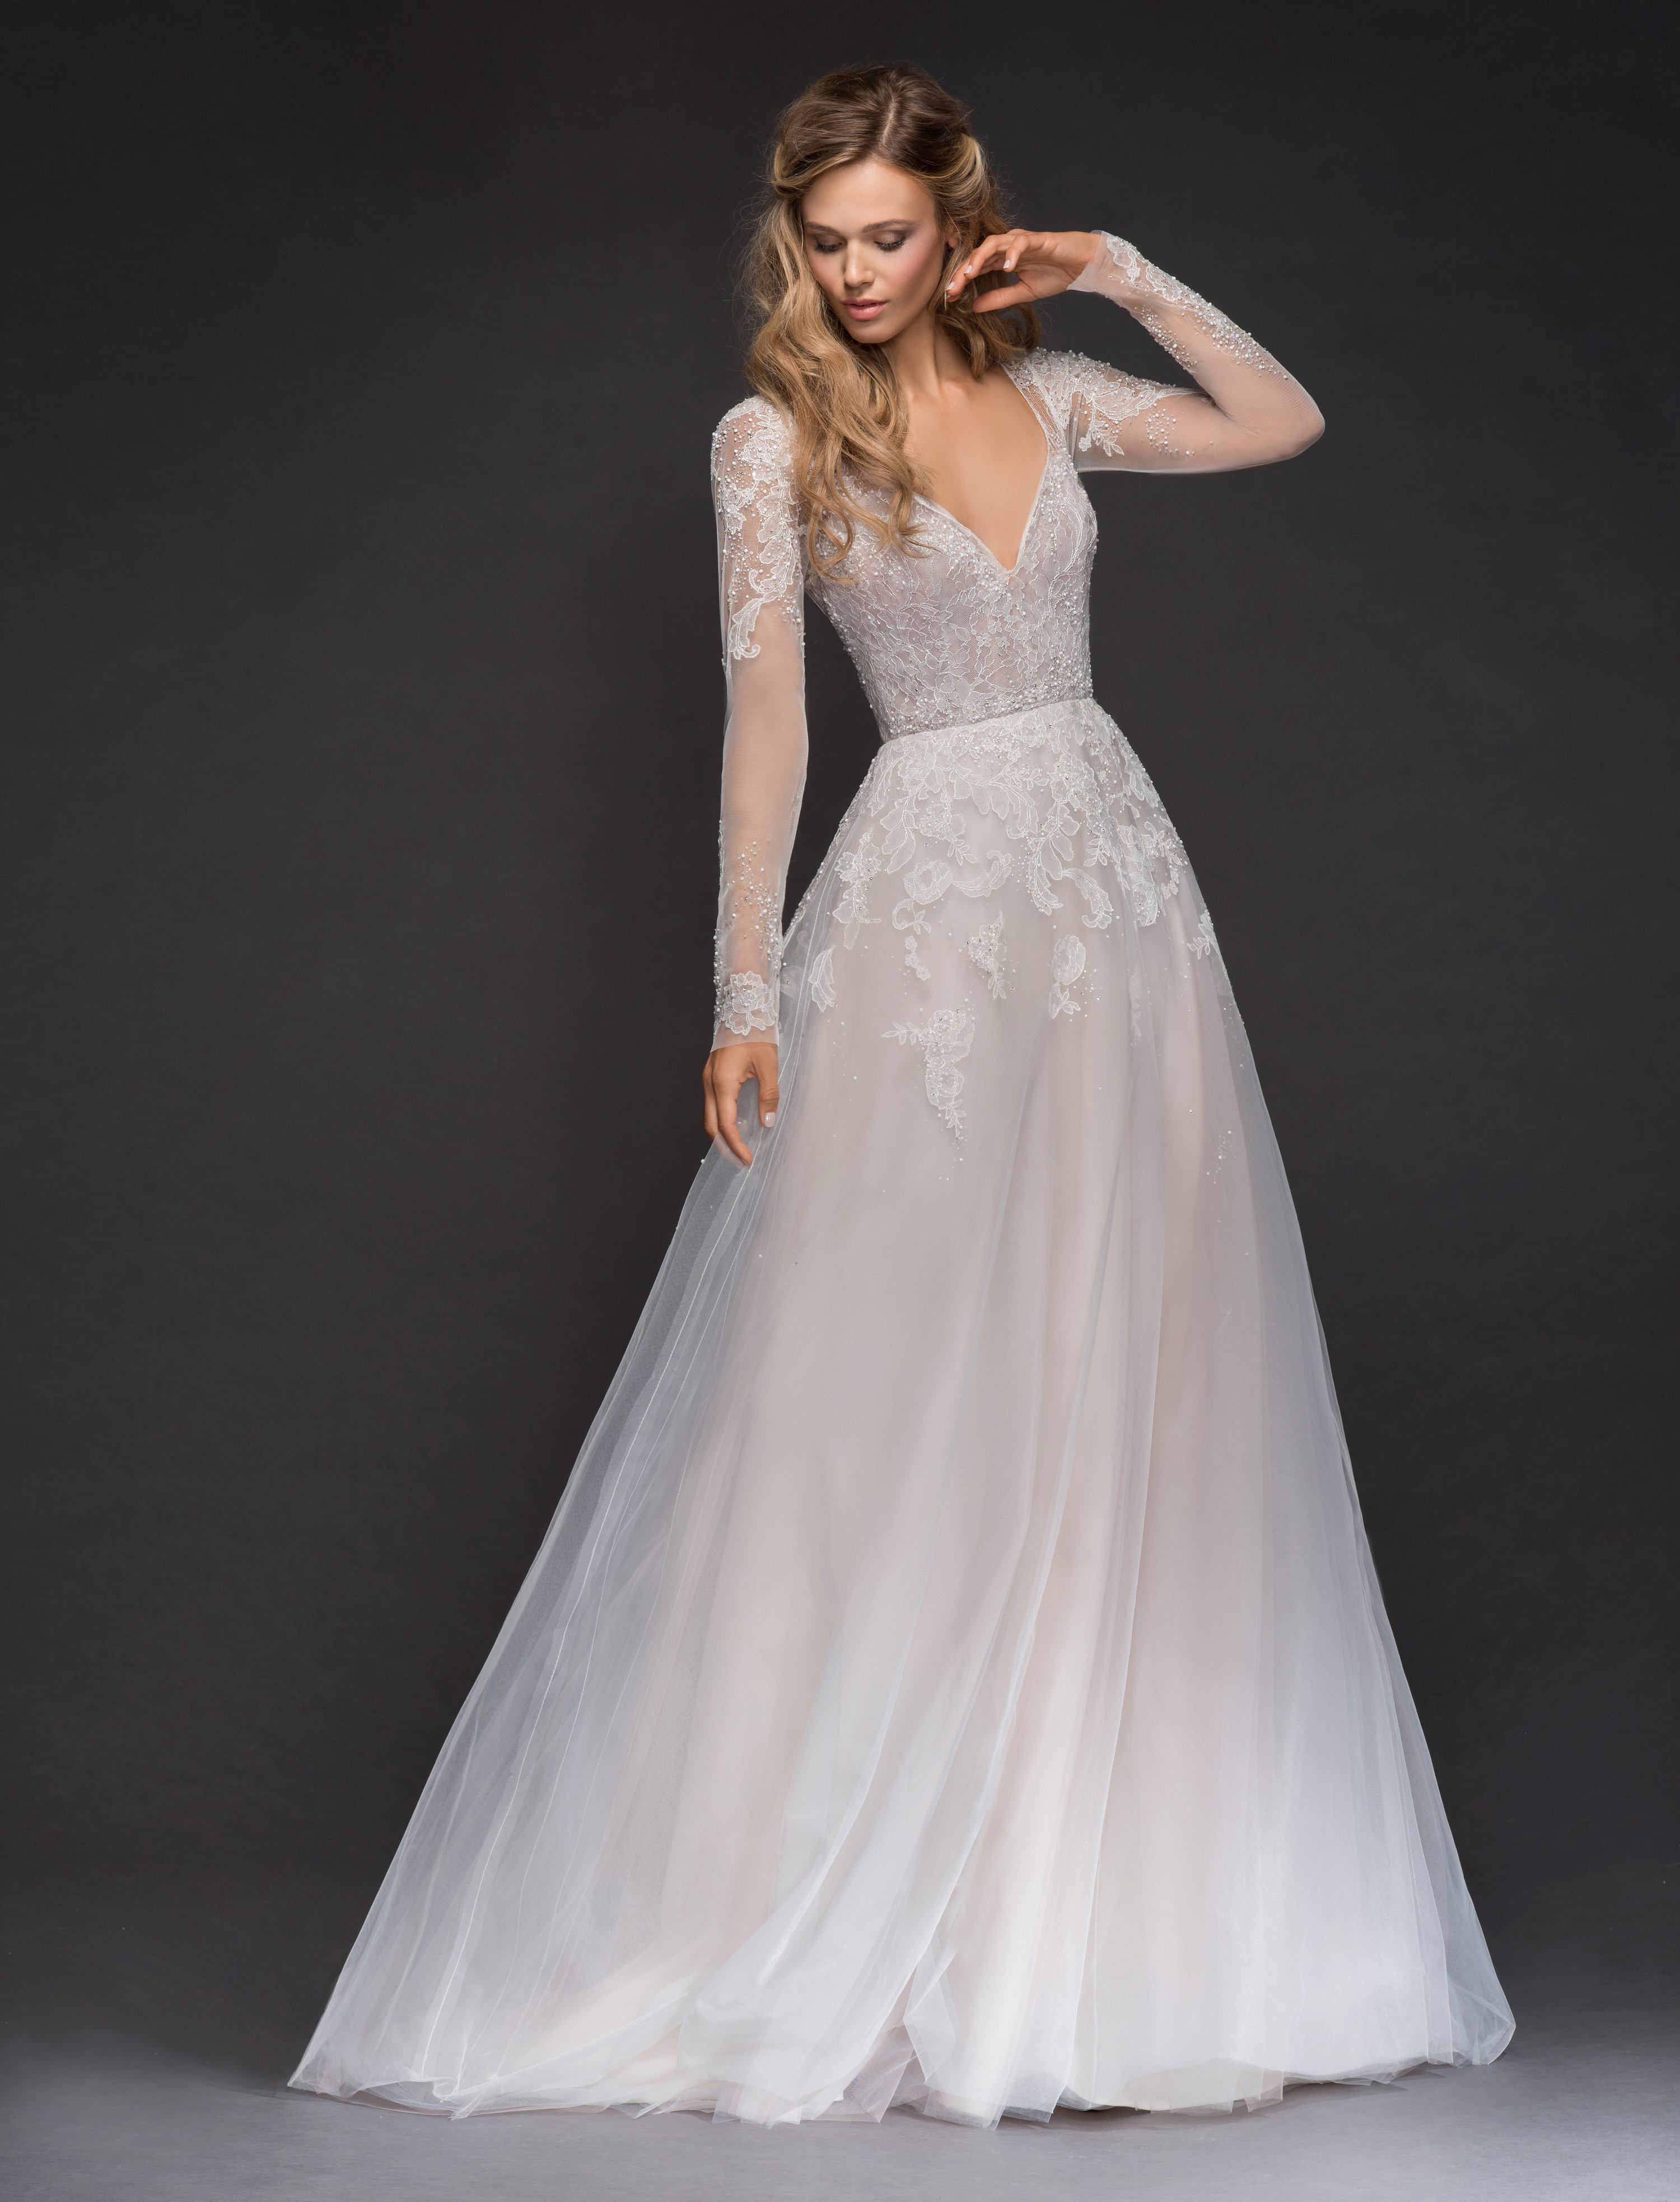 Bridal Gowns And Wedding Dresses Jlm Couture - Style